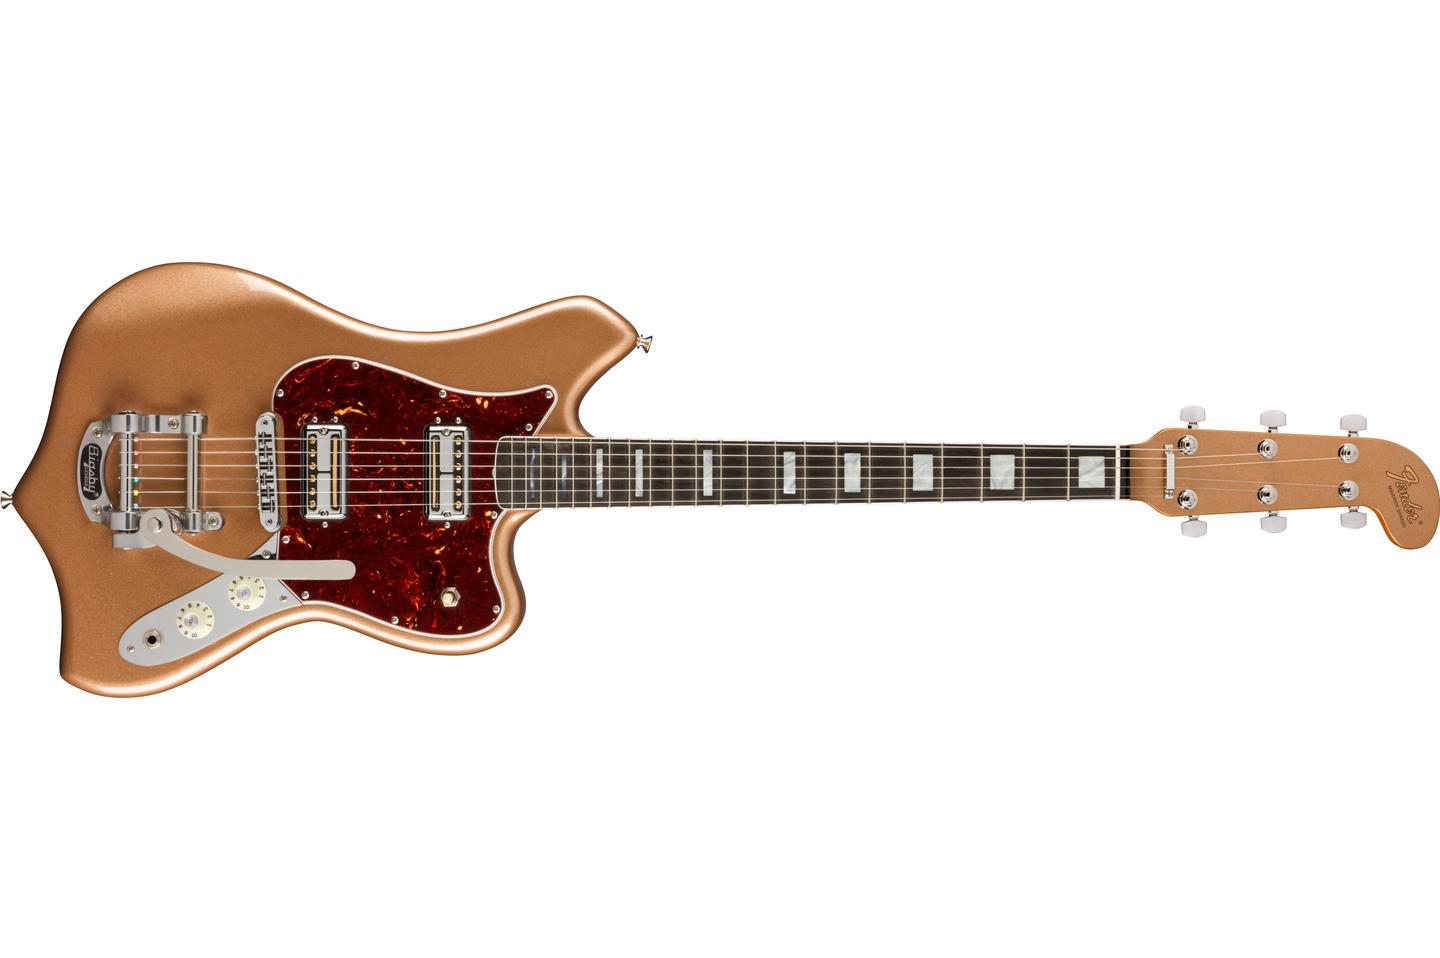 The Maverick Dorado is based on a short release guitar from 1969 that was made using spare parts from Fender models